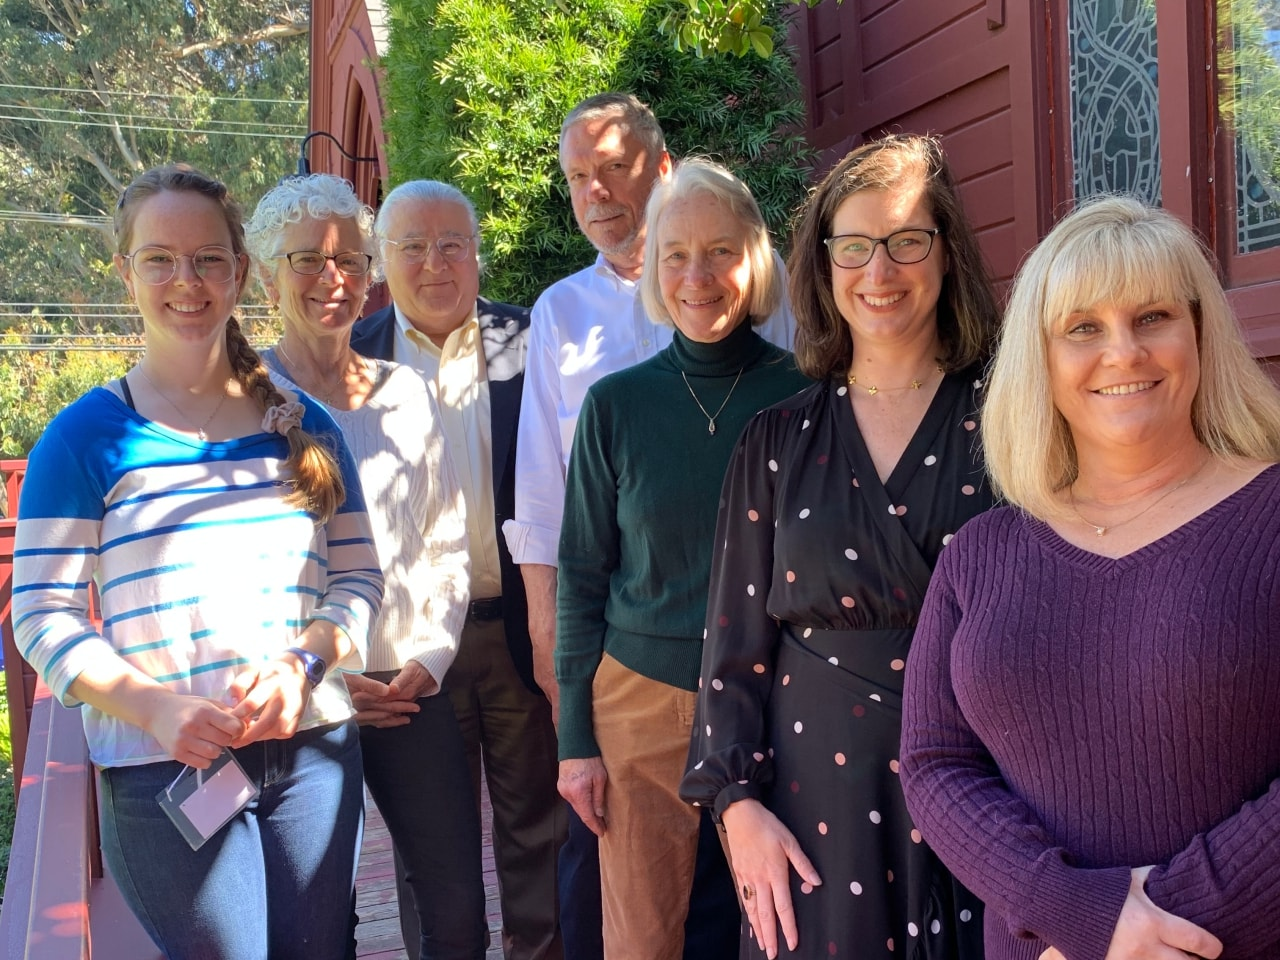 Group photo of Rector search committee 2019 in Pacific Grove, CA